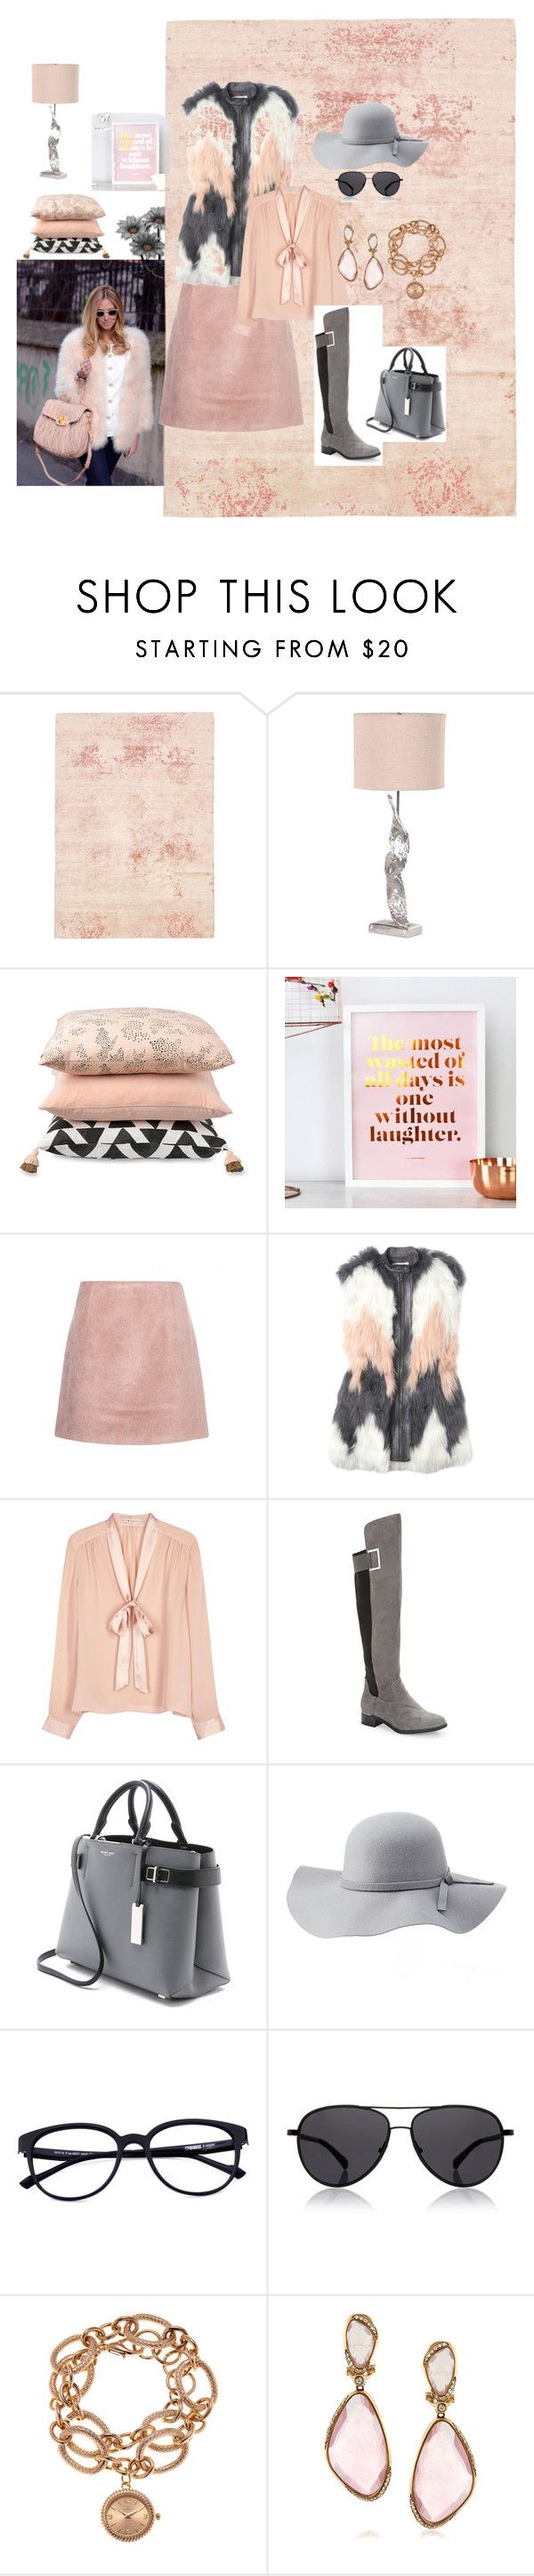 """""""Untitled #122"""" by sanela-o ❤ liked on Polyvore featuring Acne Studios, Rebecca Taylor, Alice + Olivia, Calvin Klein, Michael Kors, Charlotte Russe, The Row, Louis Arden and Mark Broumand"""